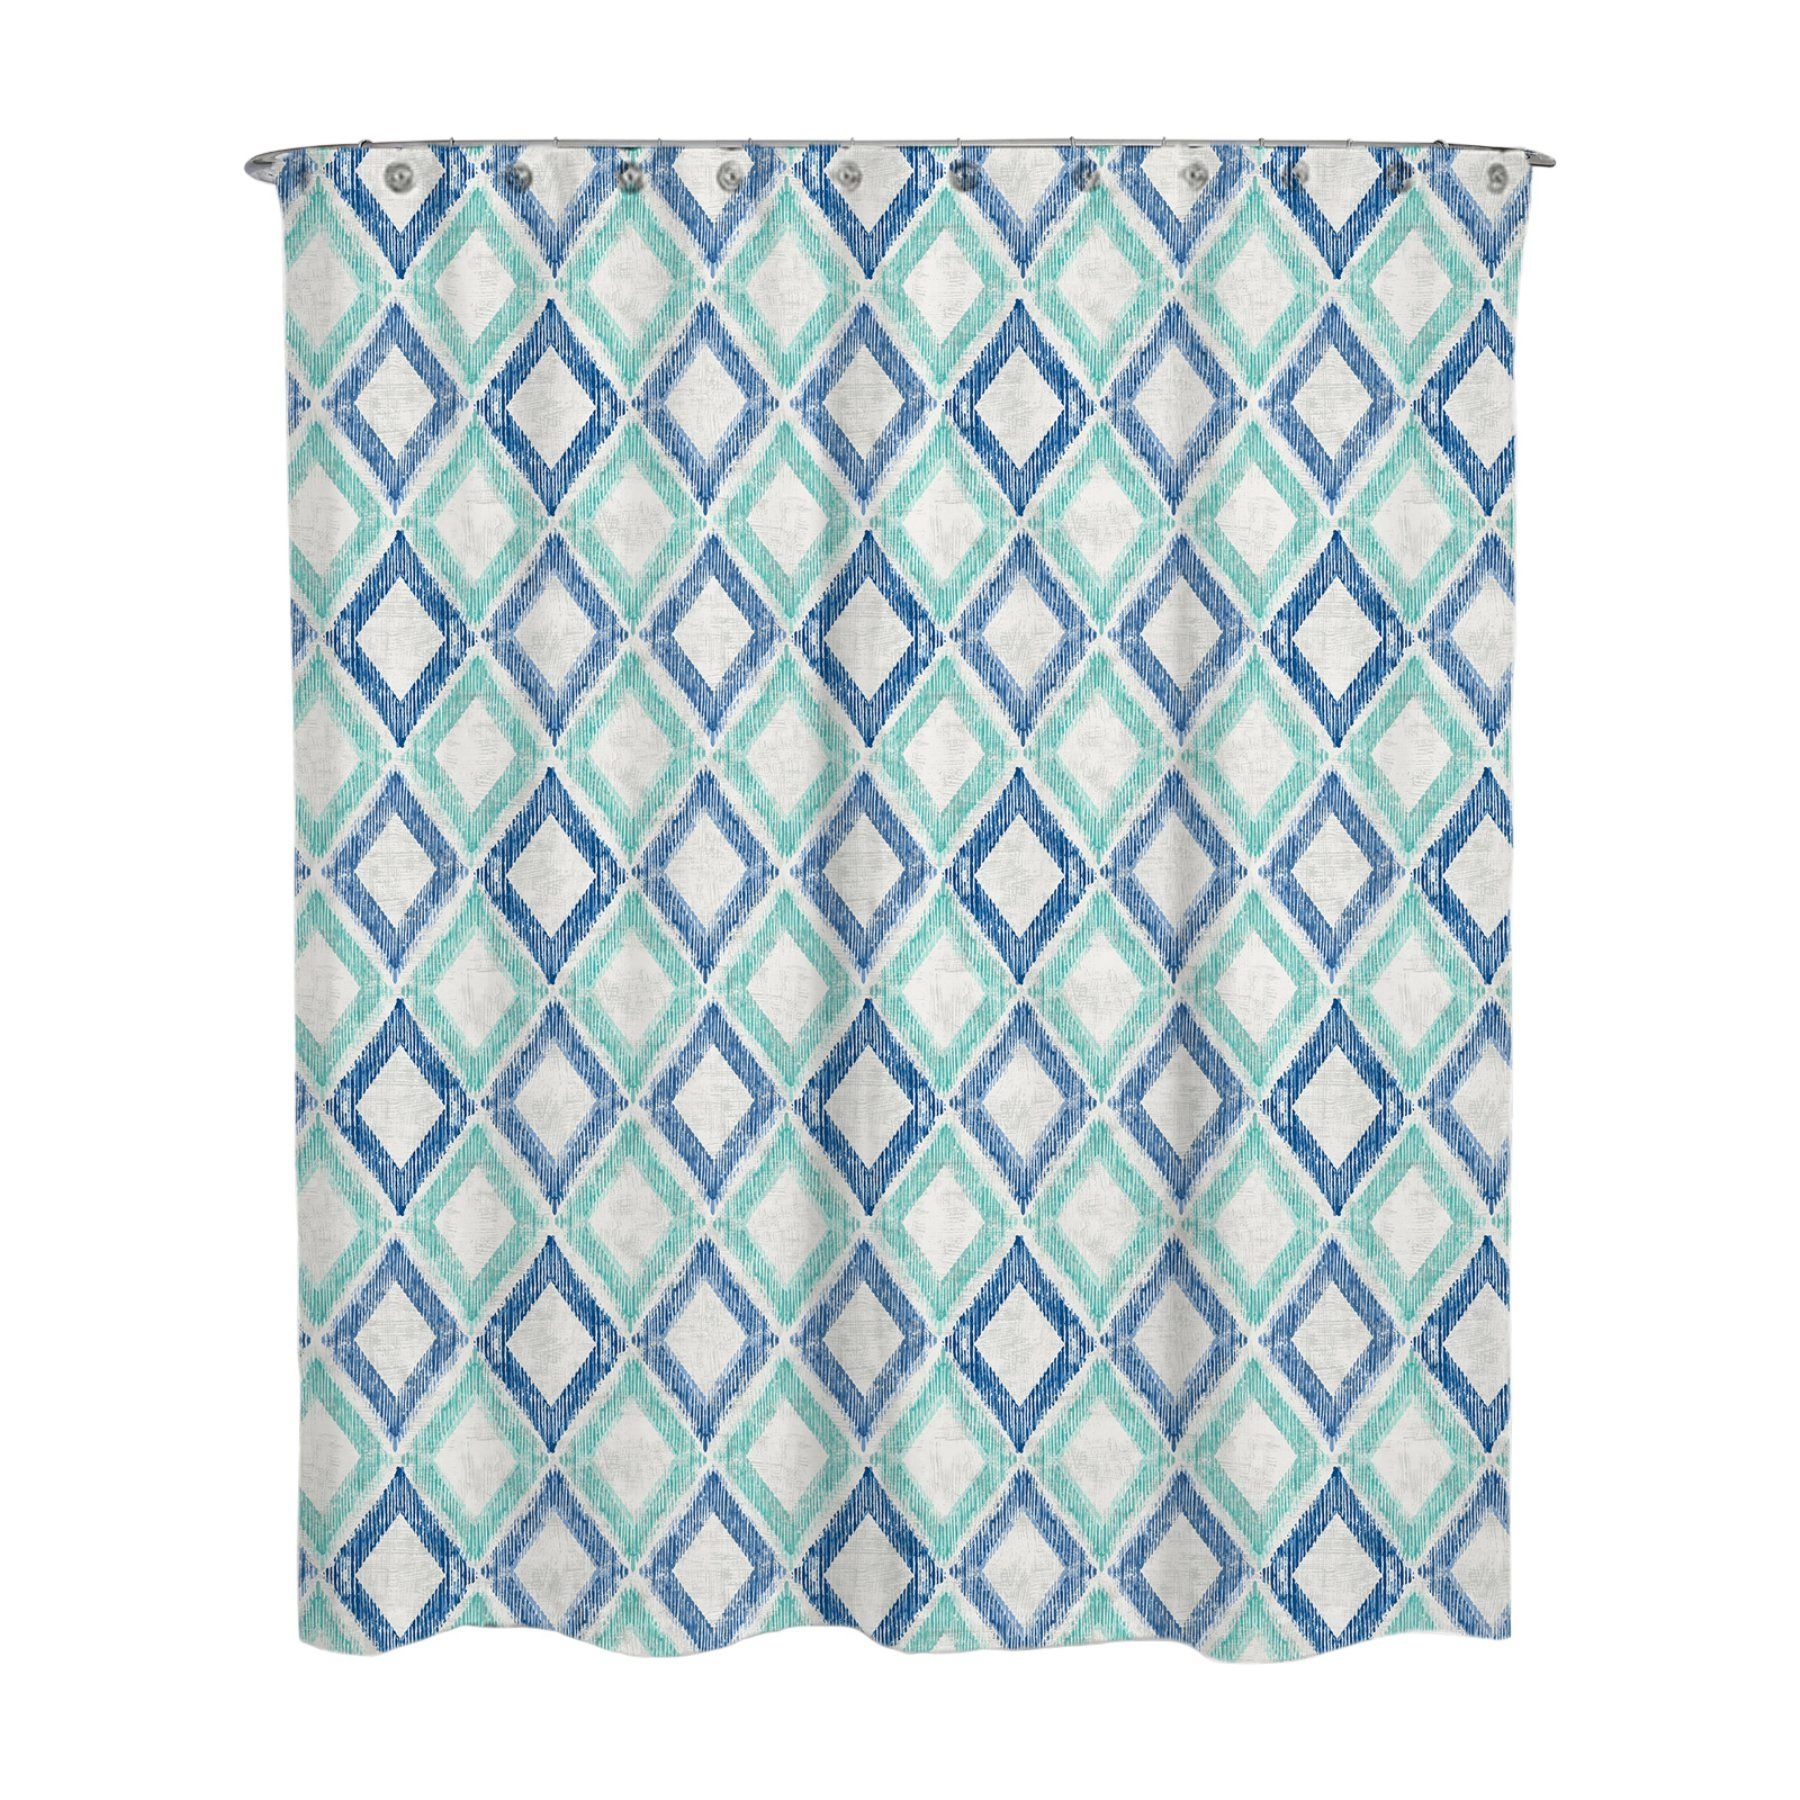 Geometric Green And Blue Apen Water Repellent Shower Curtain By A1